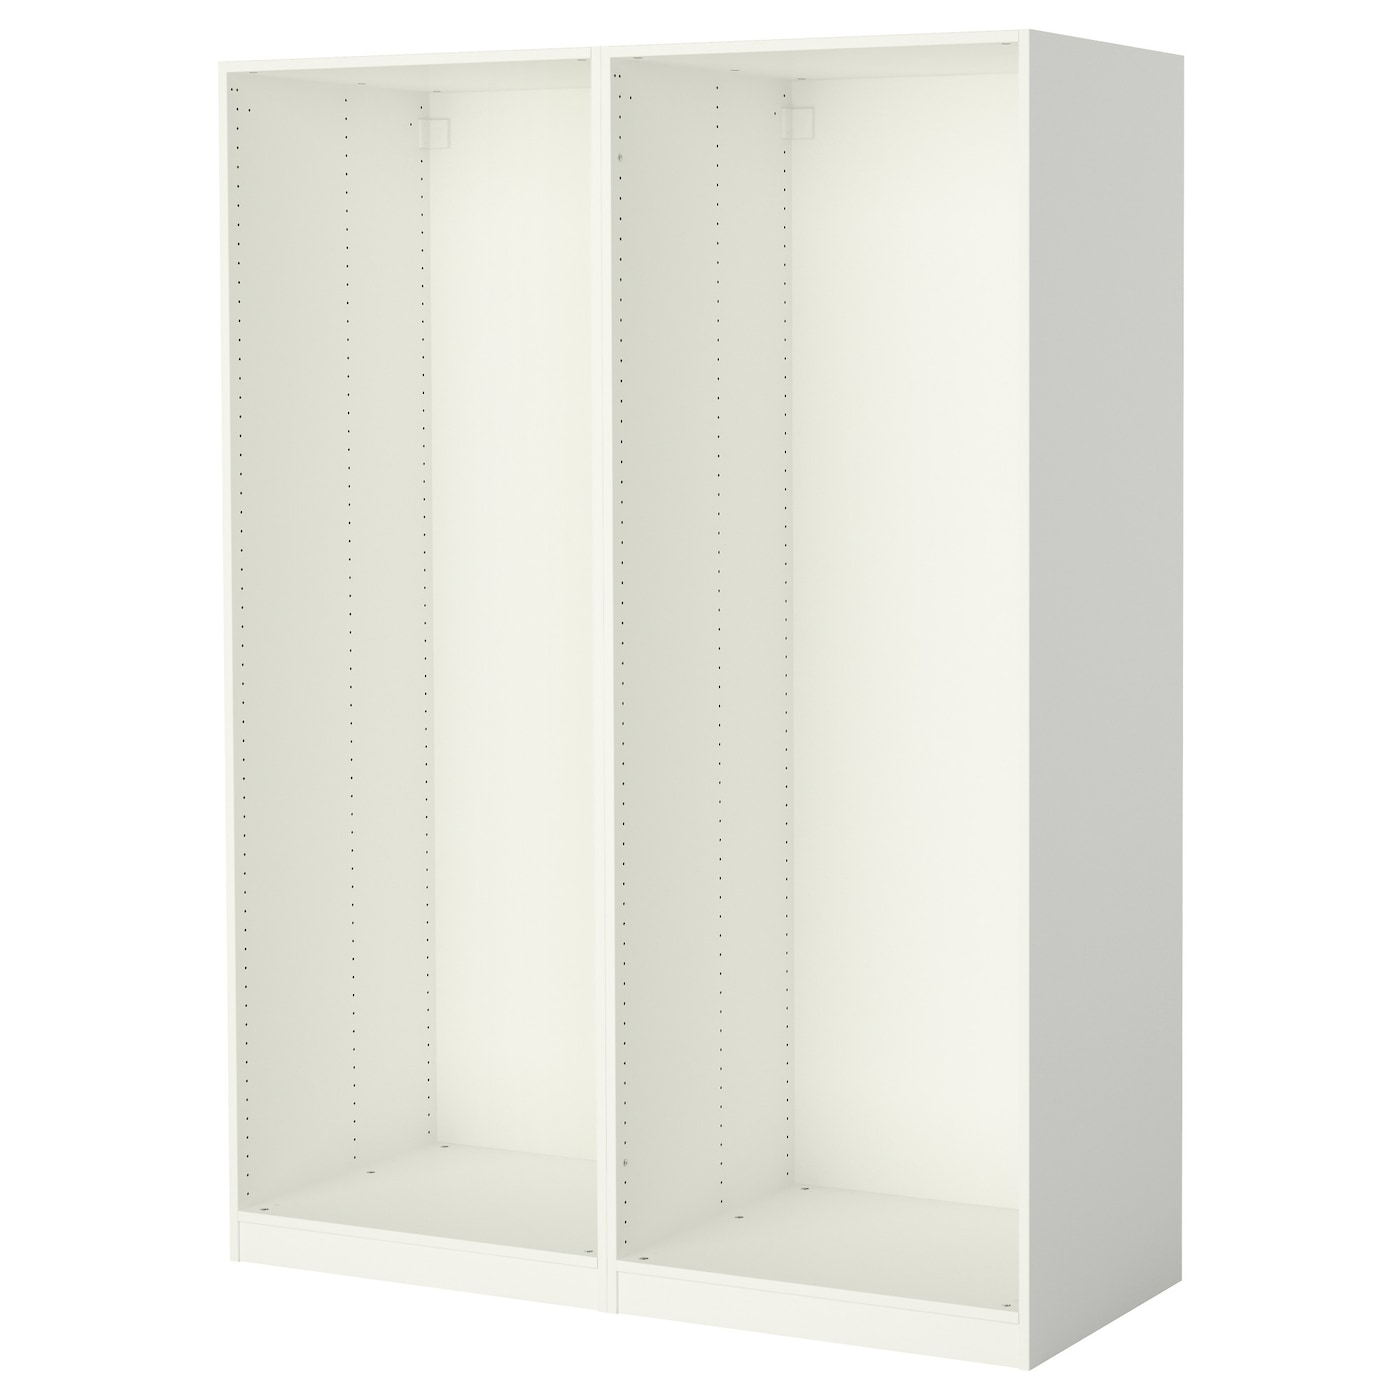 IKEA PAX 2 wardrobe frames 10 year guarantee. Read about the terms in the guarantee brochure.